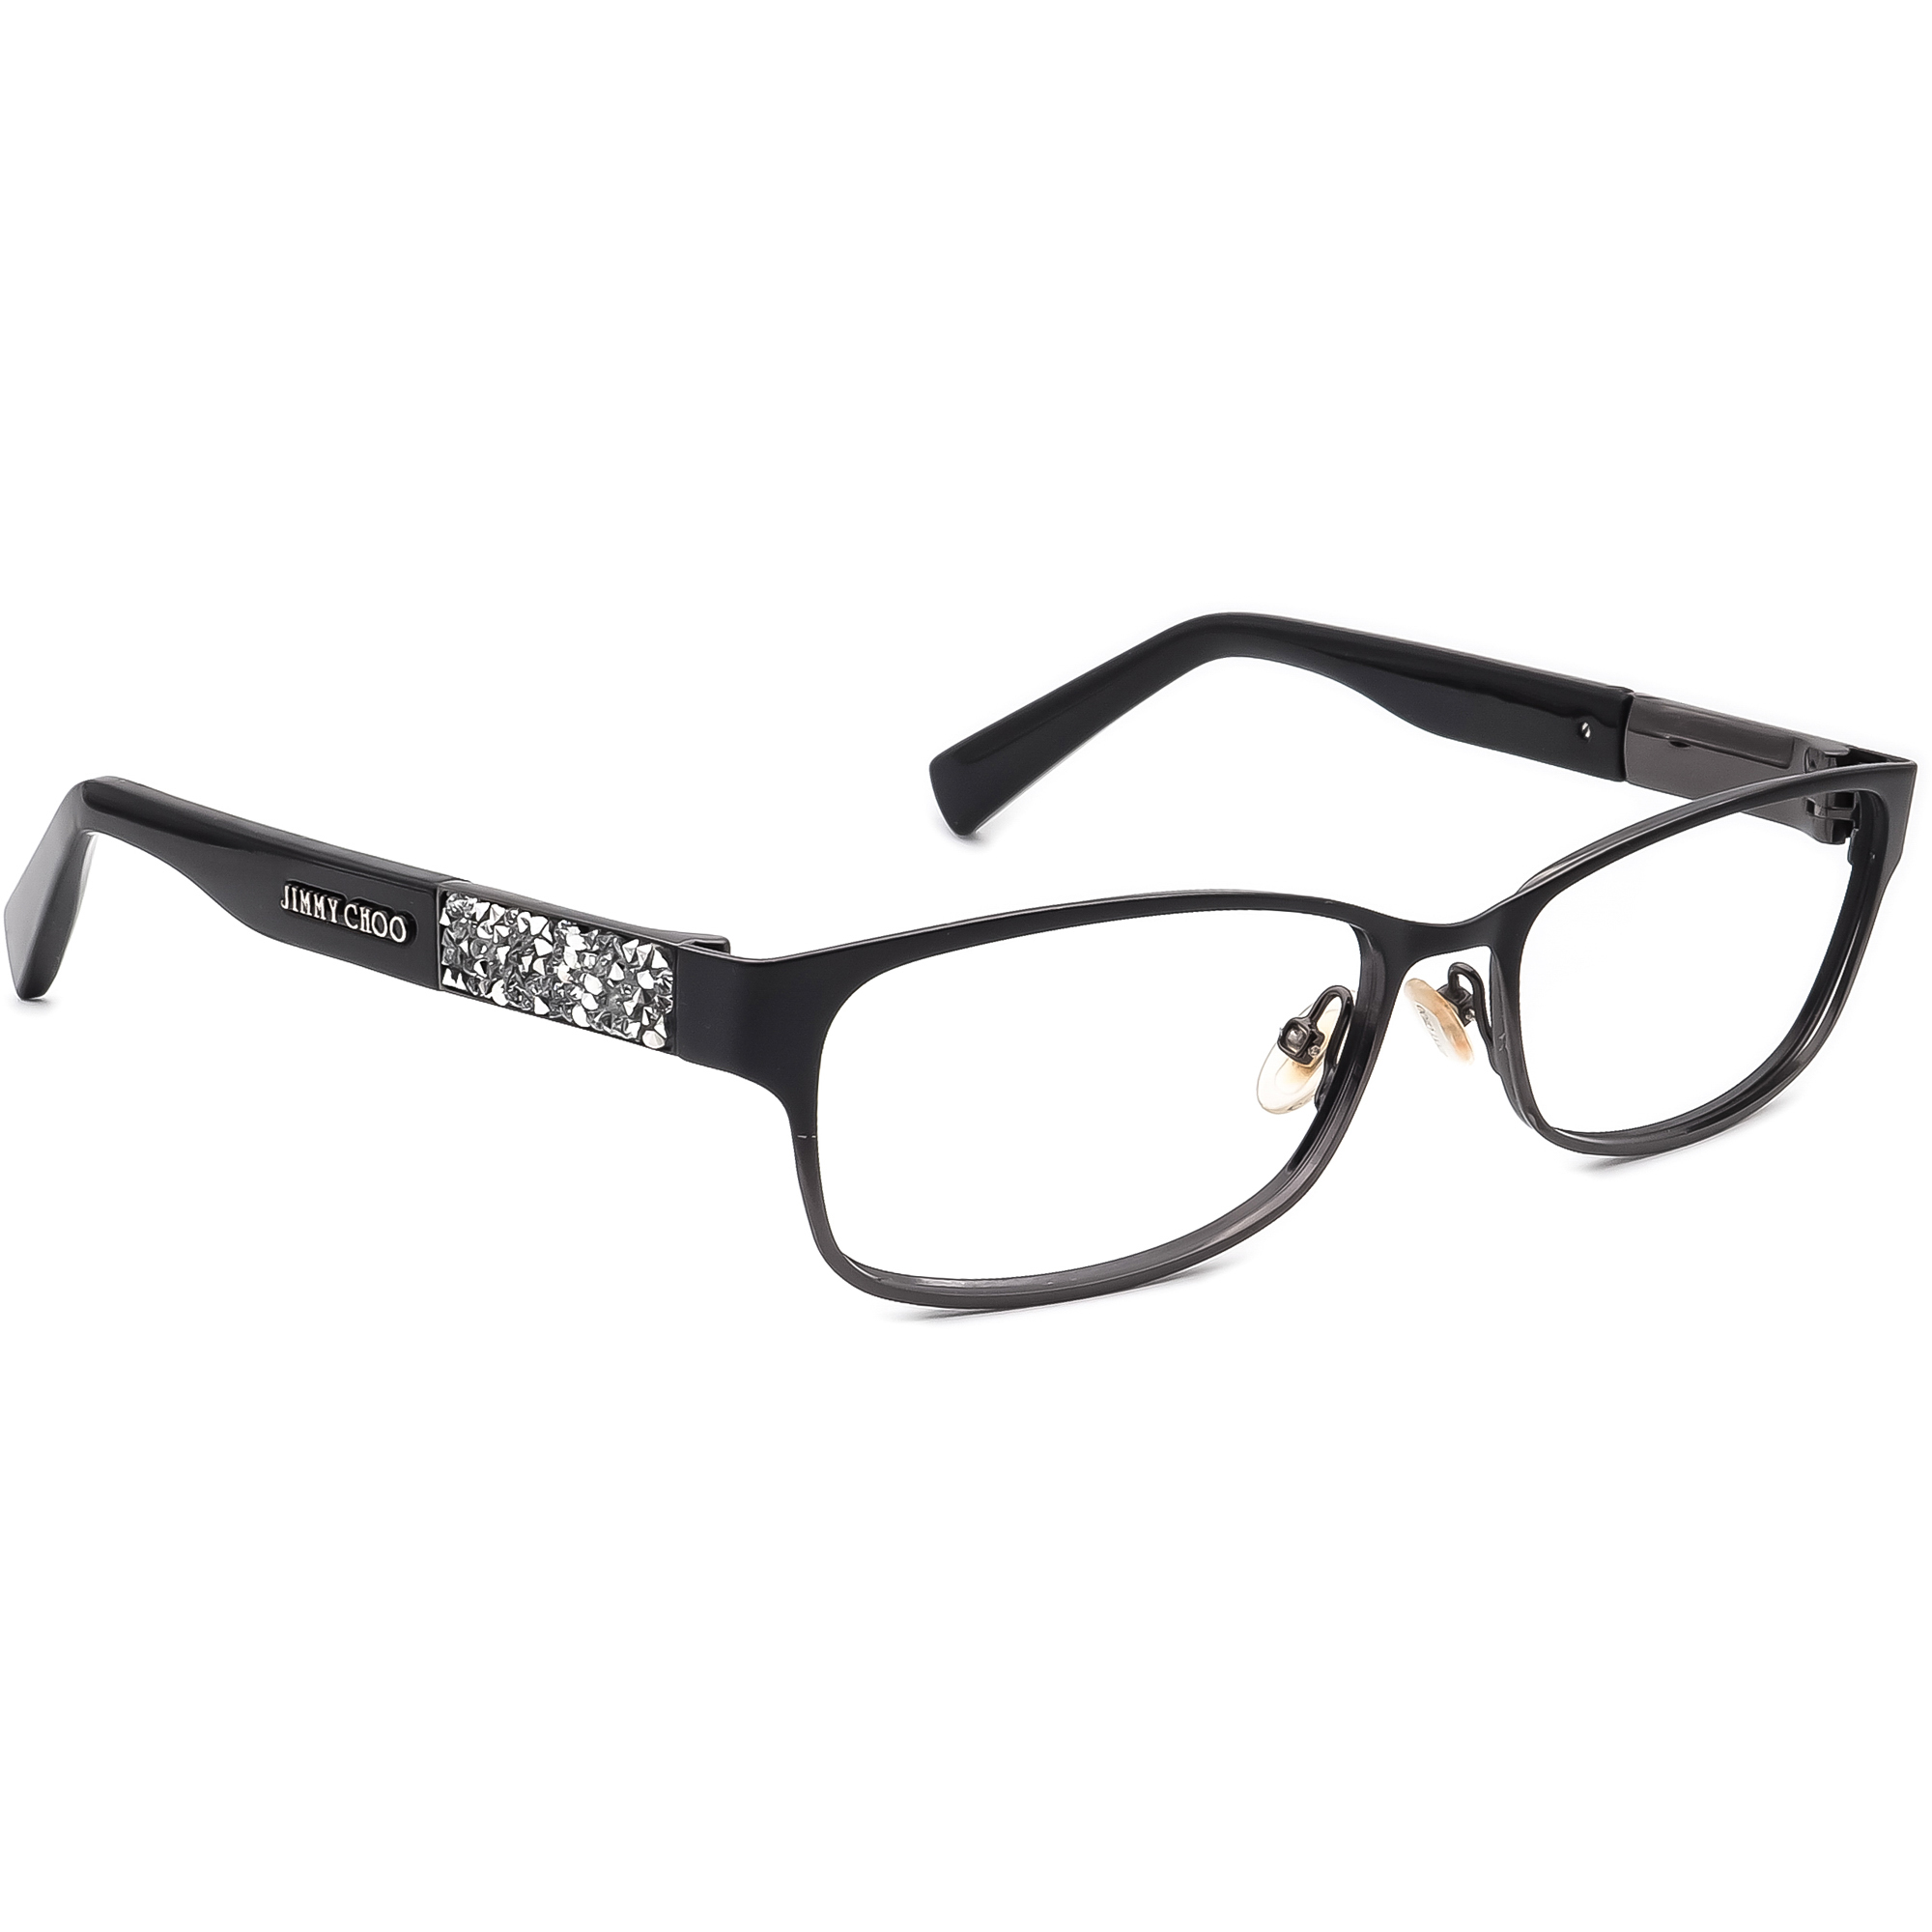 Jimmy Choo JC 124 K18 Eyeglasses